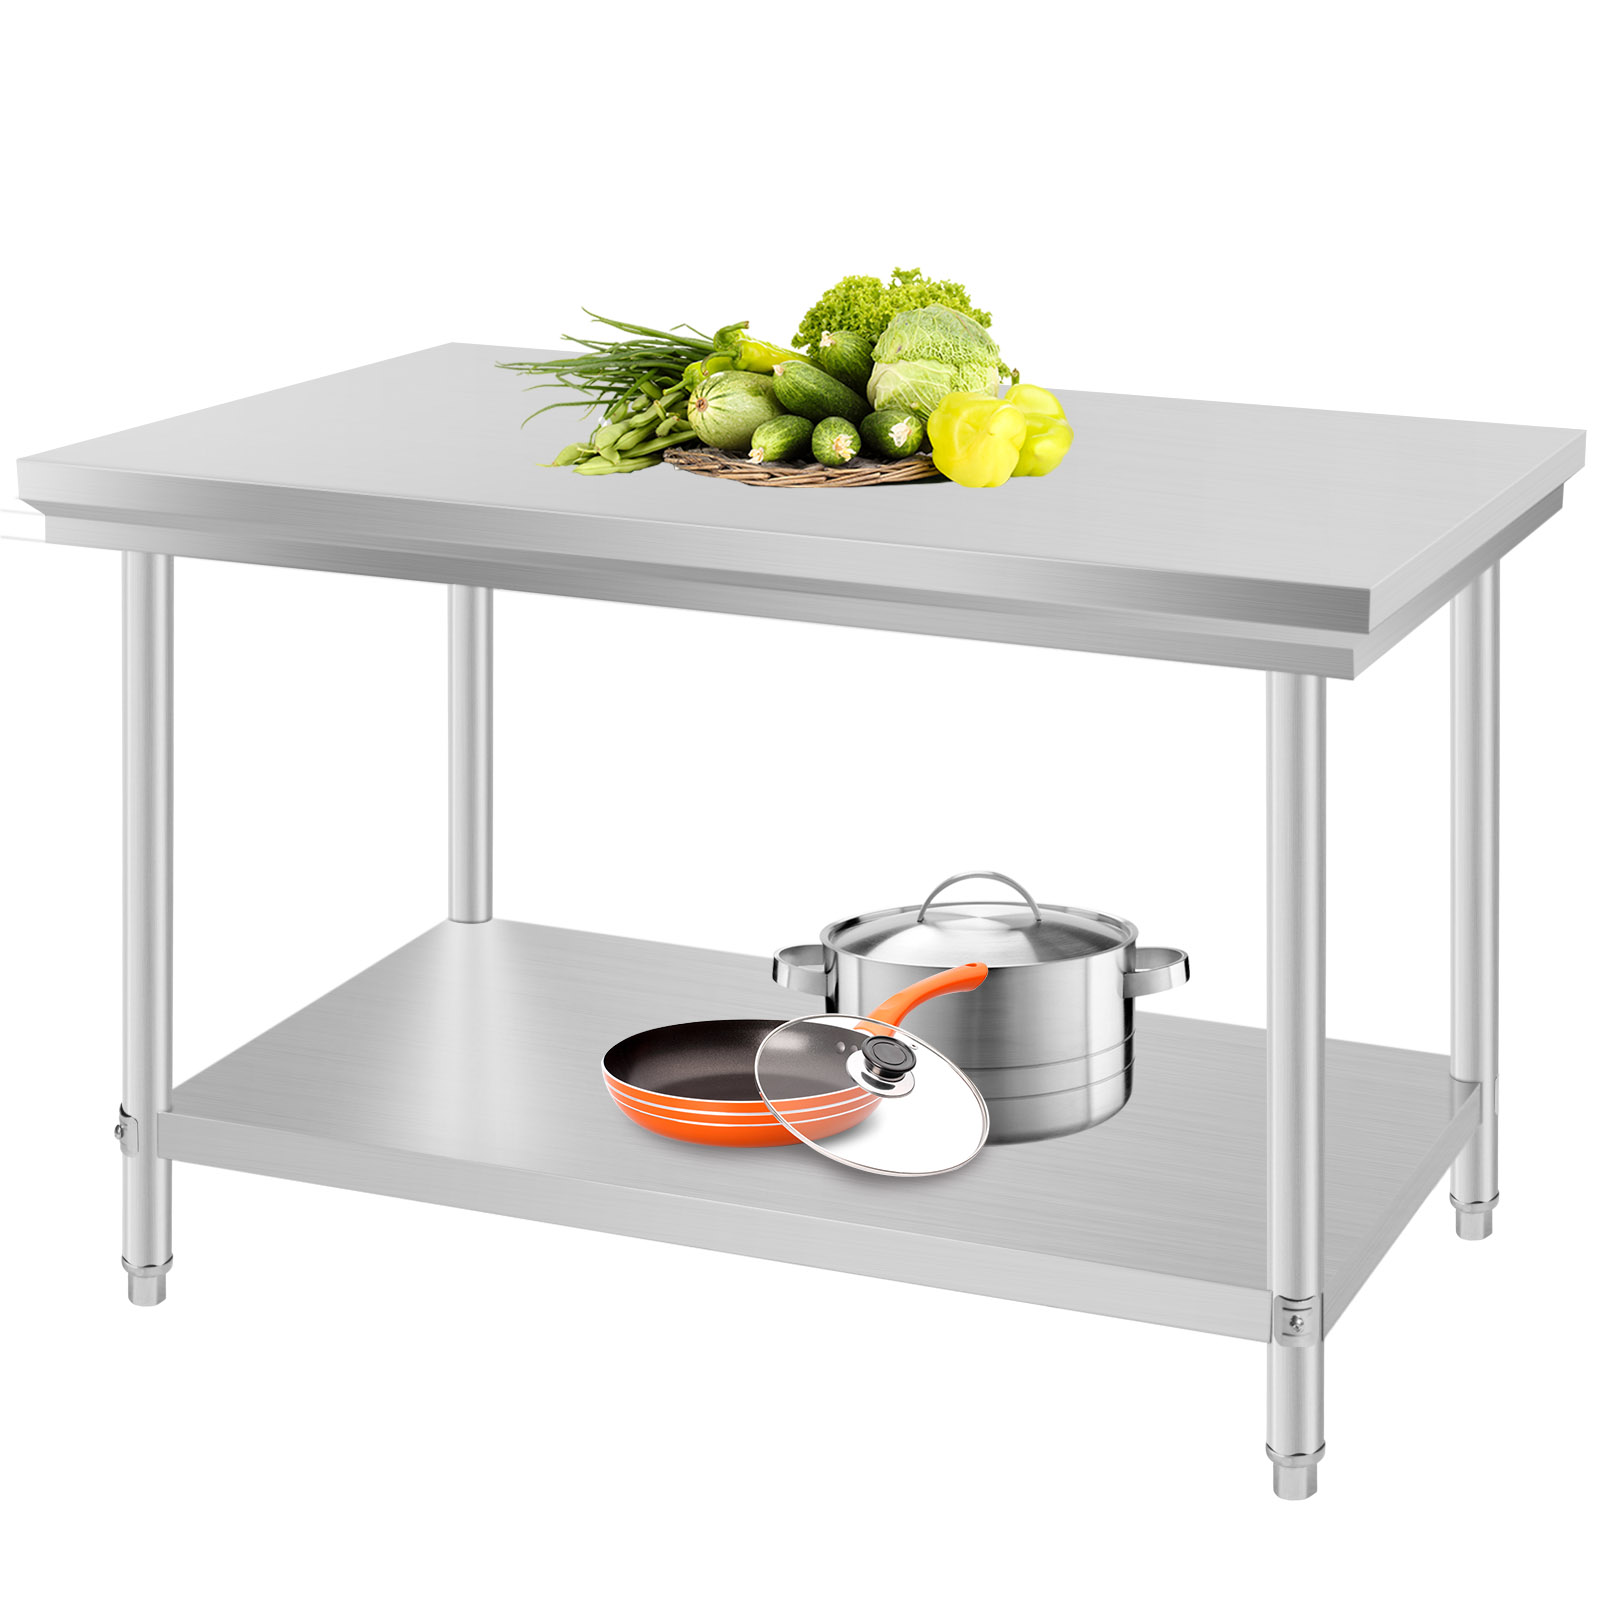 prep tables for kitchen storage ideas small spaces commercial table